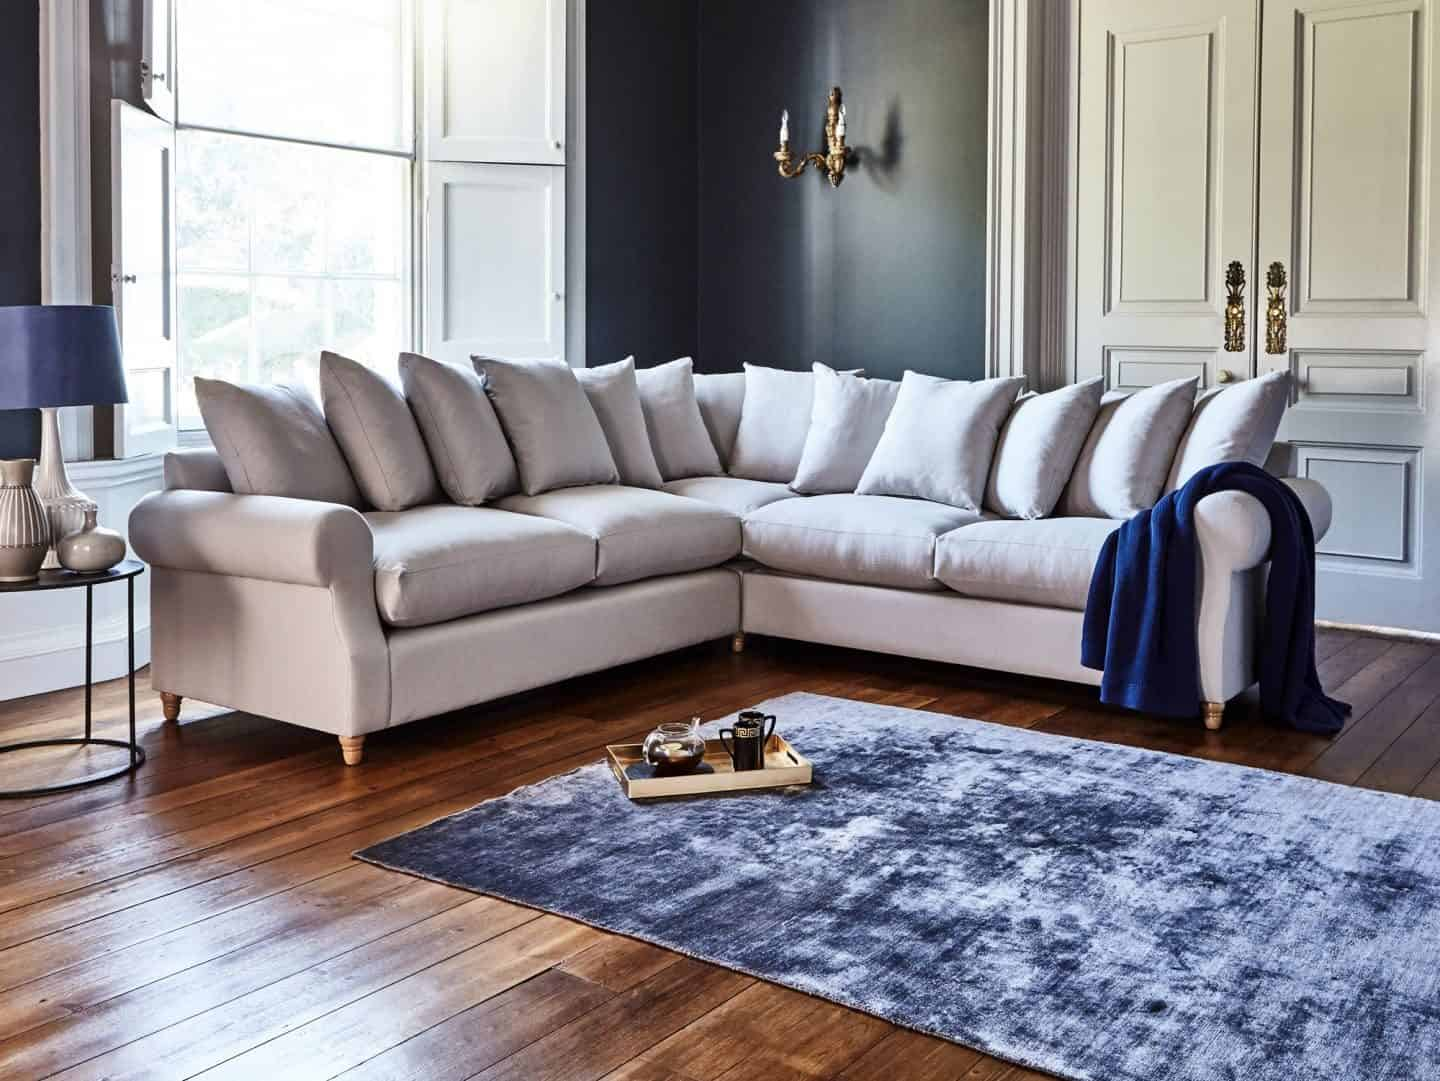 How to choose perfect fabric for furniture. Willow & Hall - Tidcombe Sofa 2